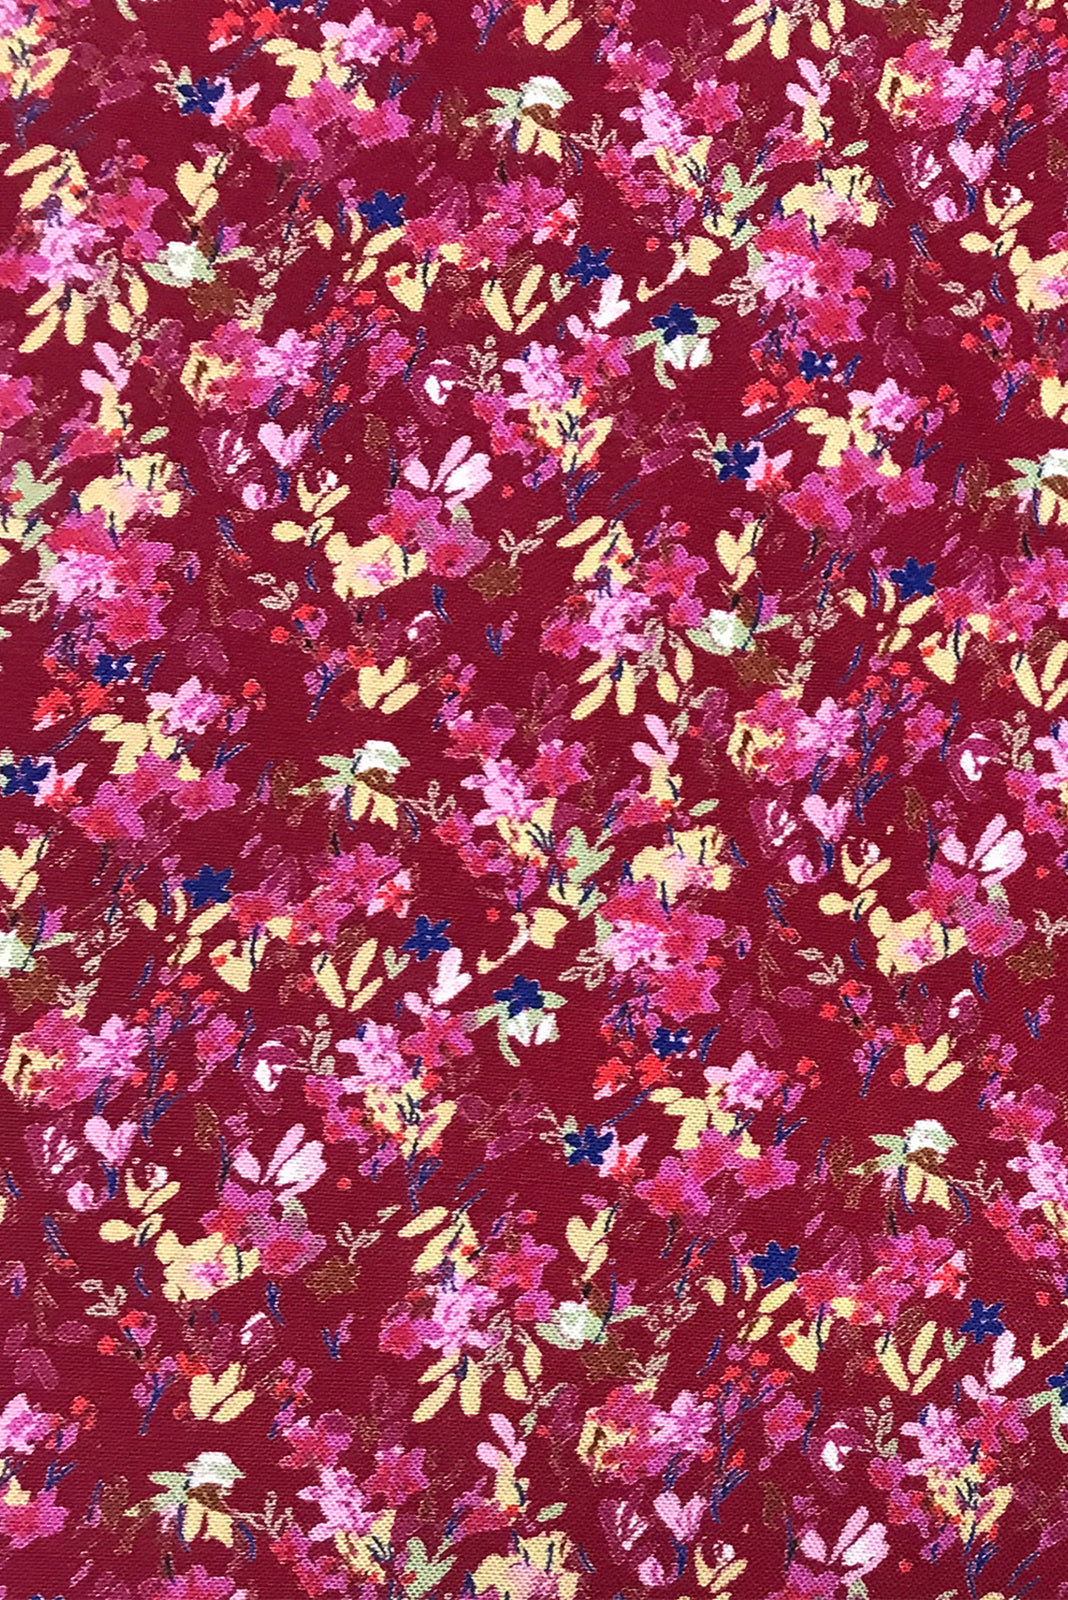 Fabric Swatch of Daydreamer Rouge Maxi Wrap Dress featuring woven 100% rayon in Scarlet red base with colourful leaf print.